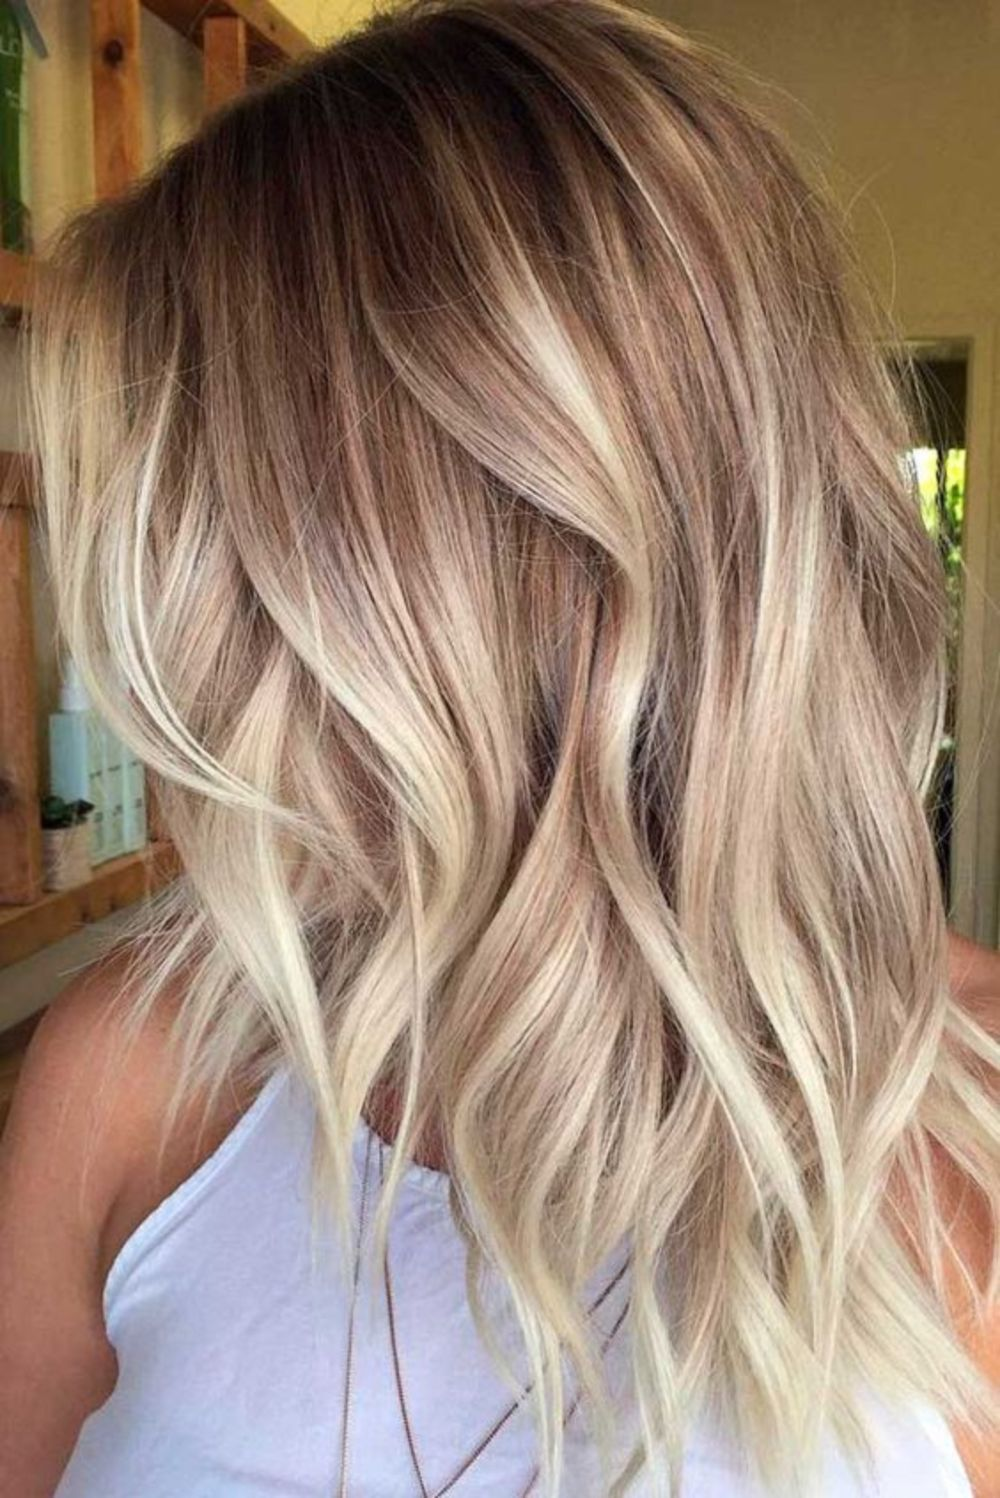 Good fitness and health are within your reach style that hair